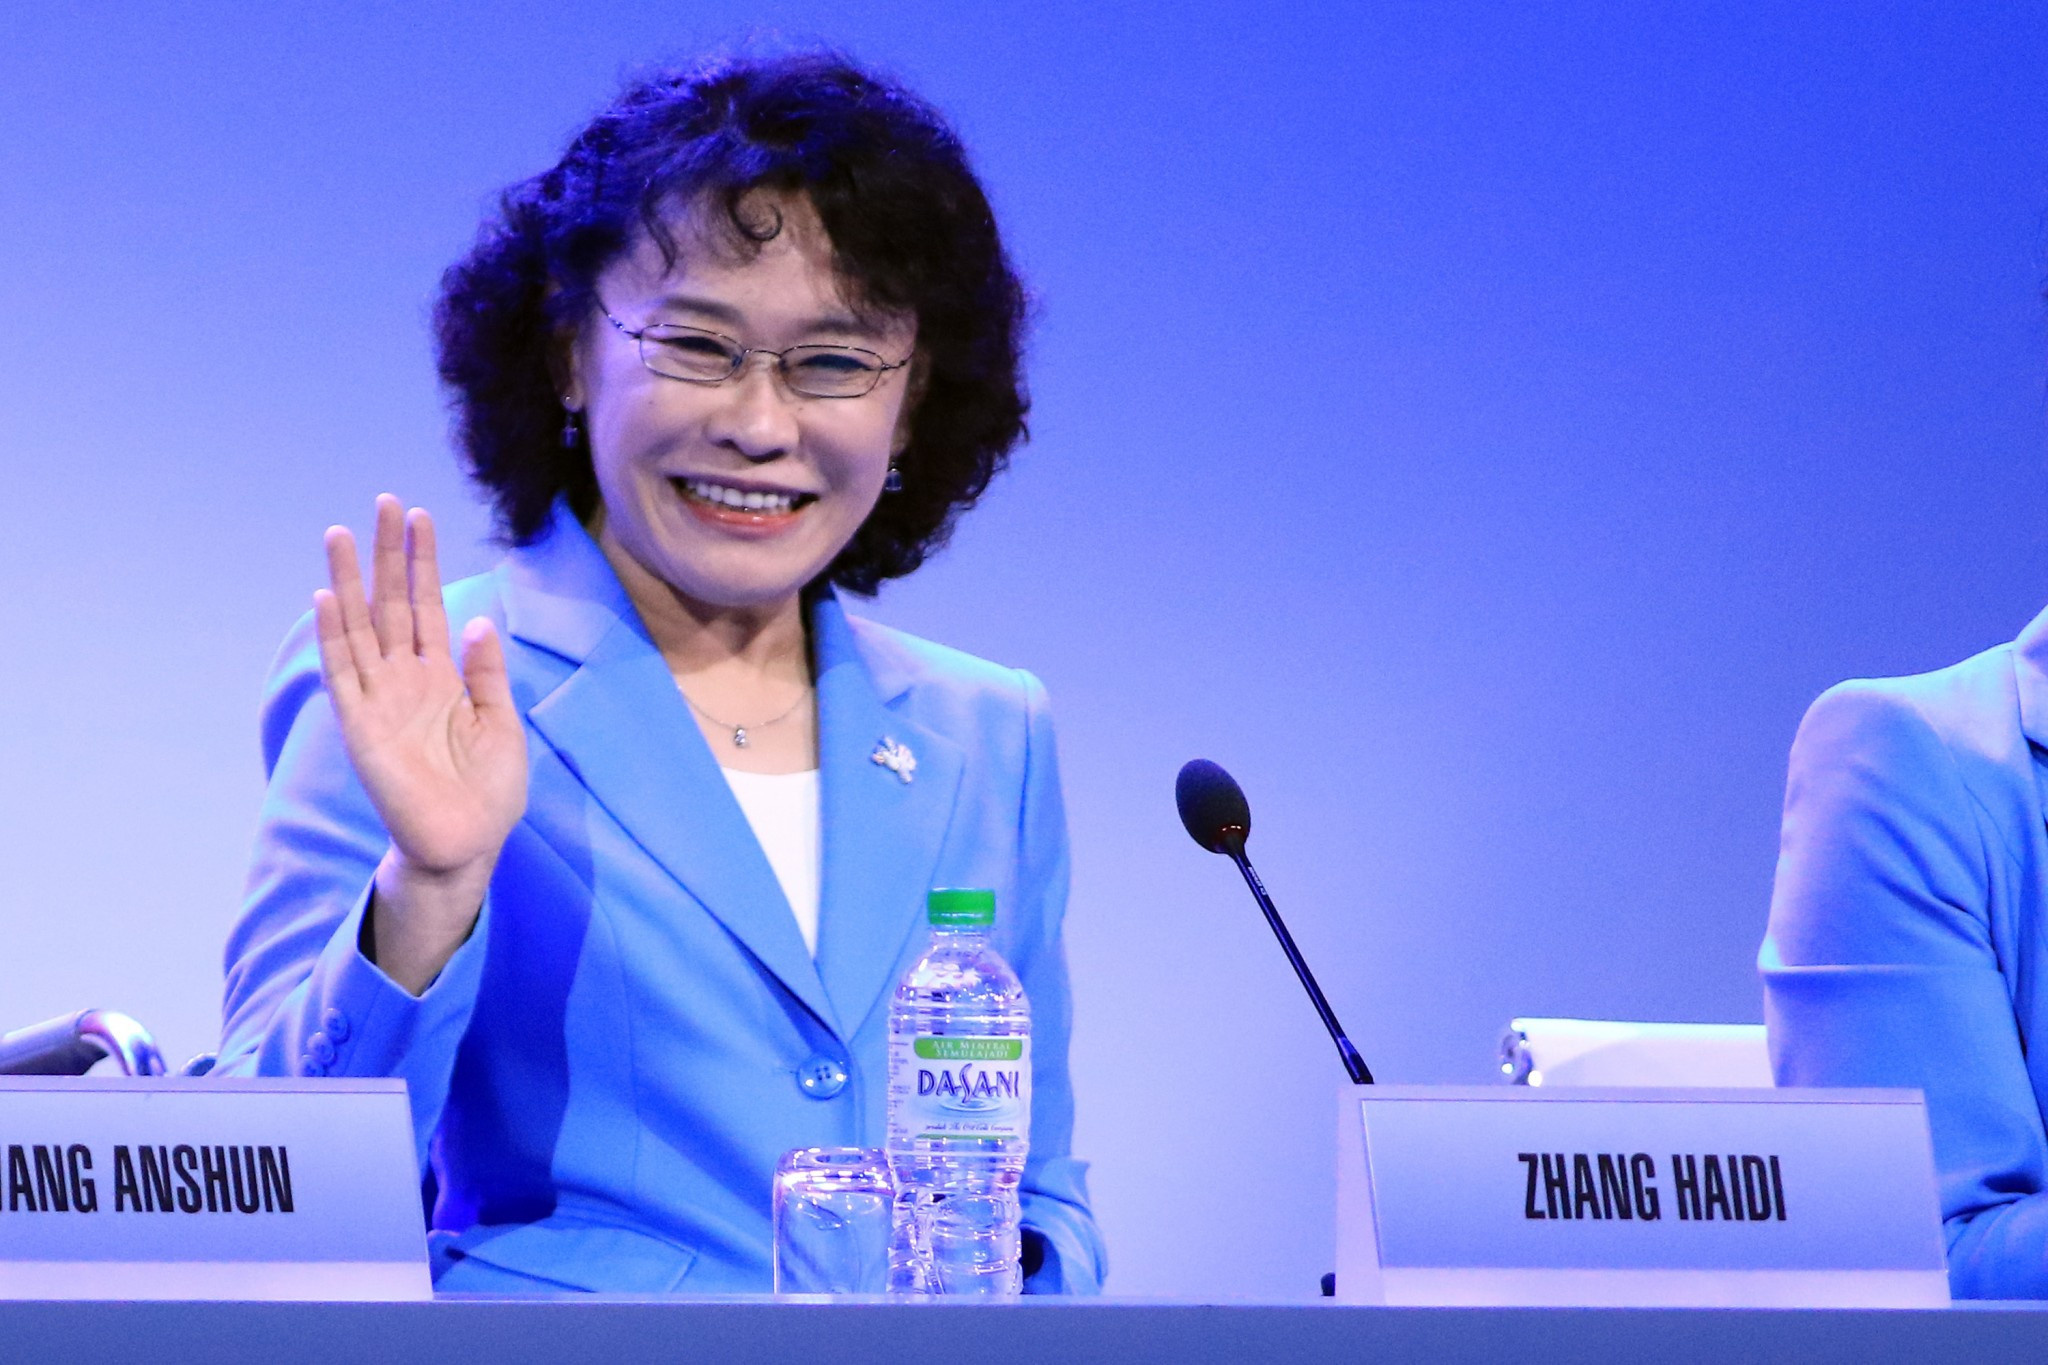 China's Zhang Haidi is aiming to succeed Sir Philip Craven as IPC President ©Getty Images